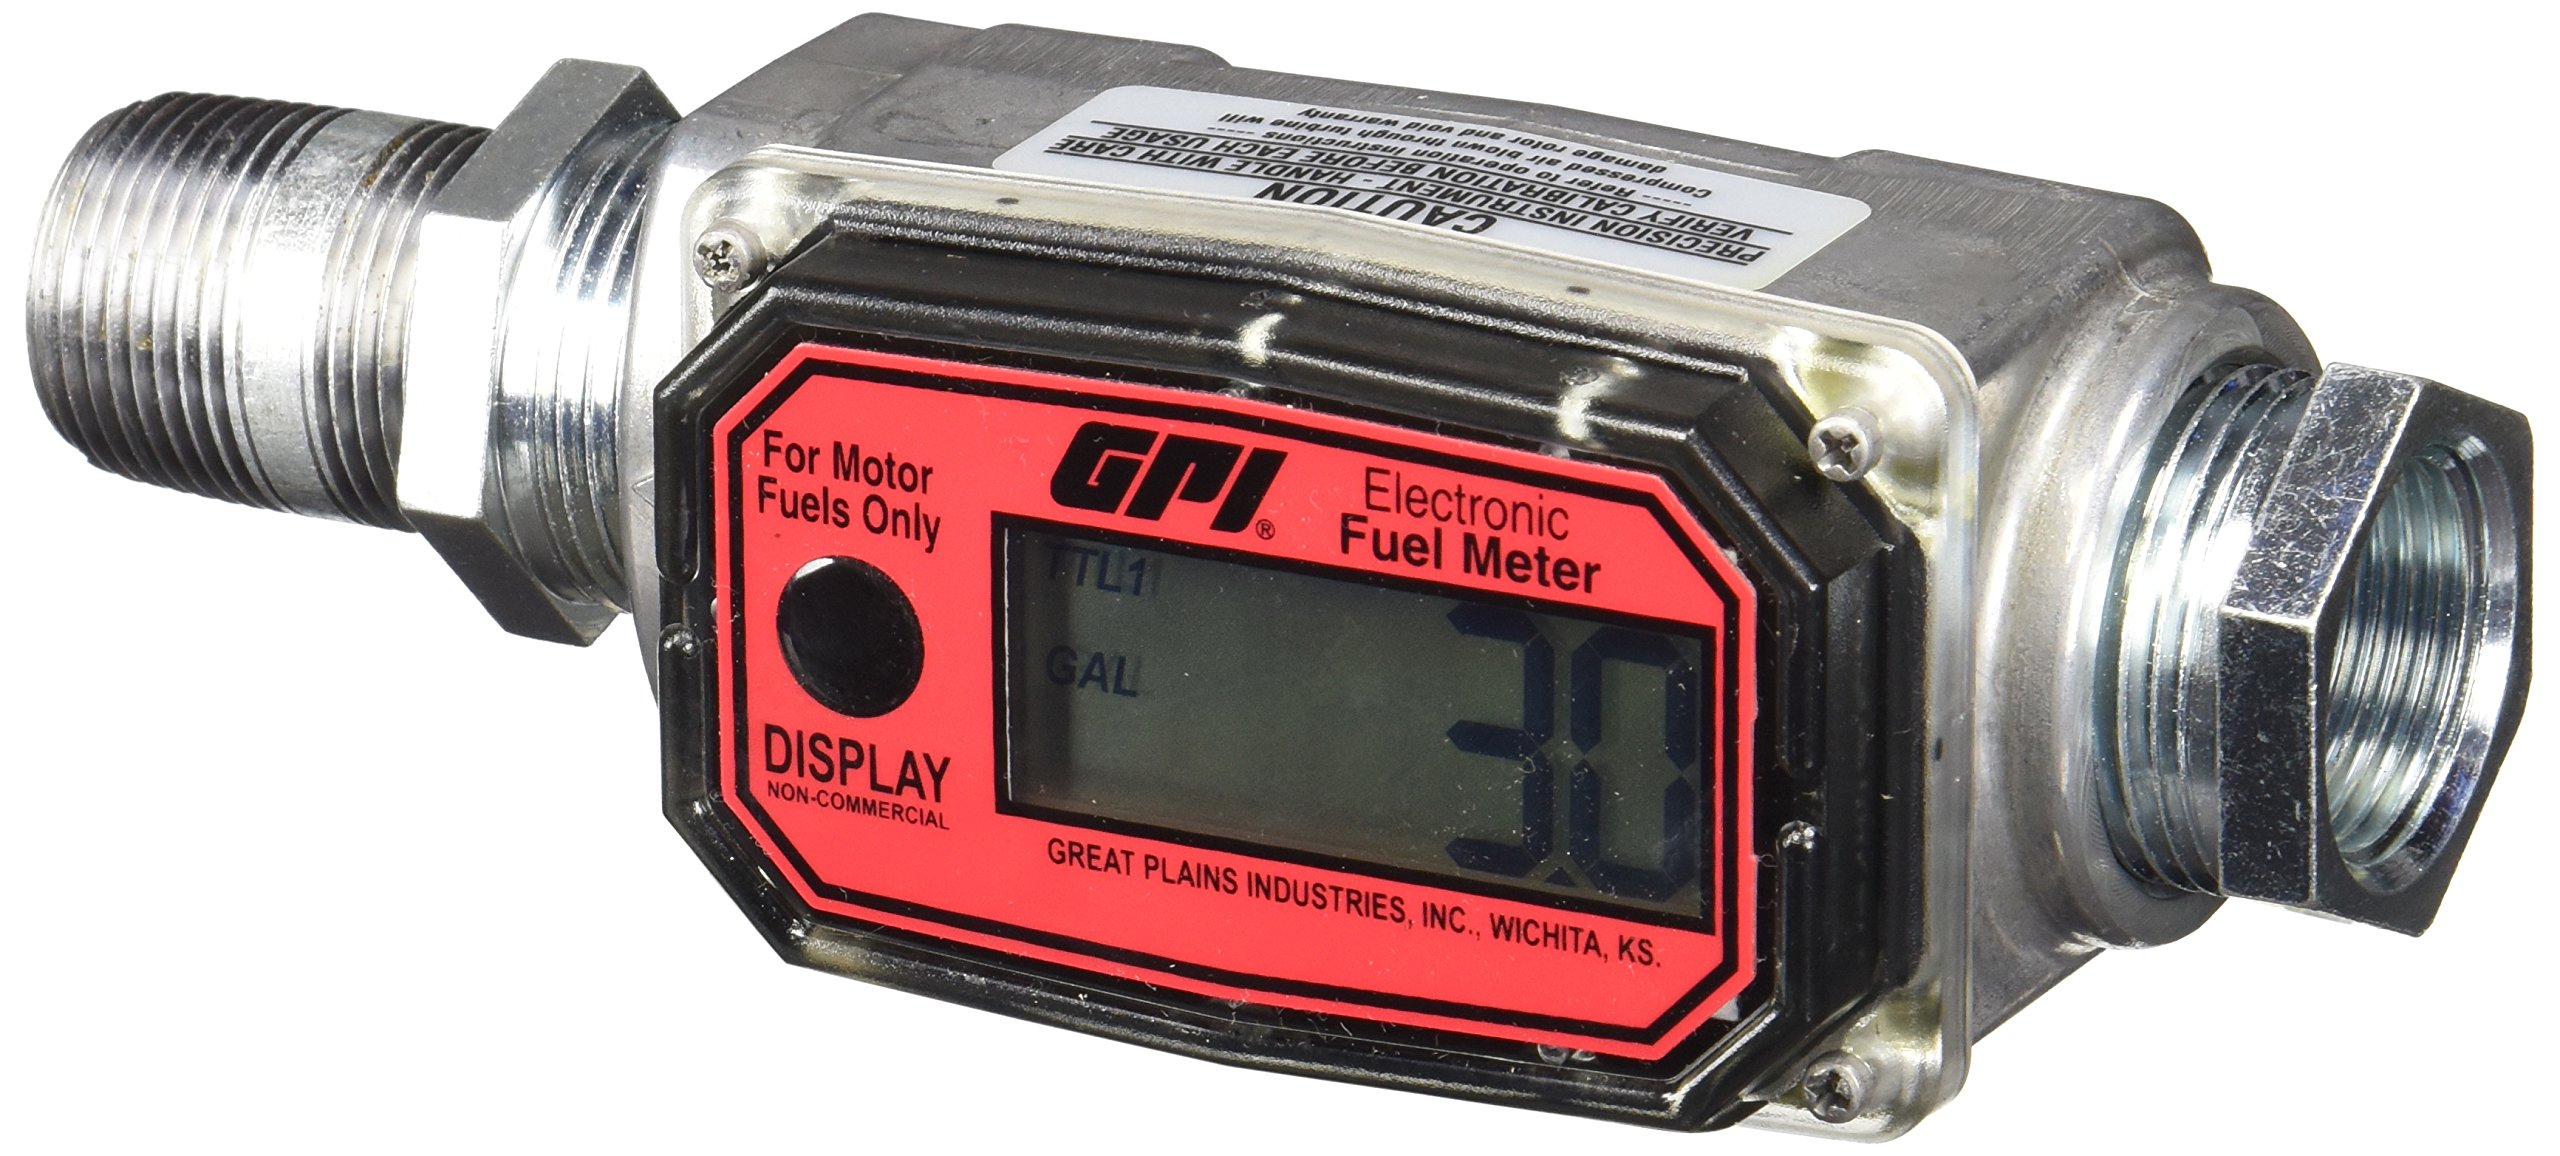 GPI 113255-1, 1'' Aluminum Fuel Meter 01A31GM, 3 to 30 GPM, NPT Thread, 300 PSI by GPI